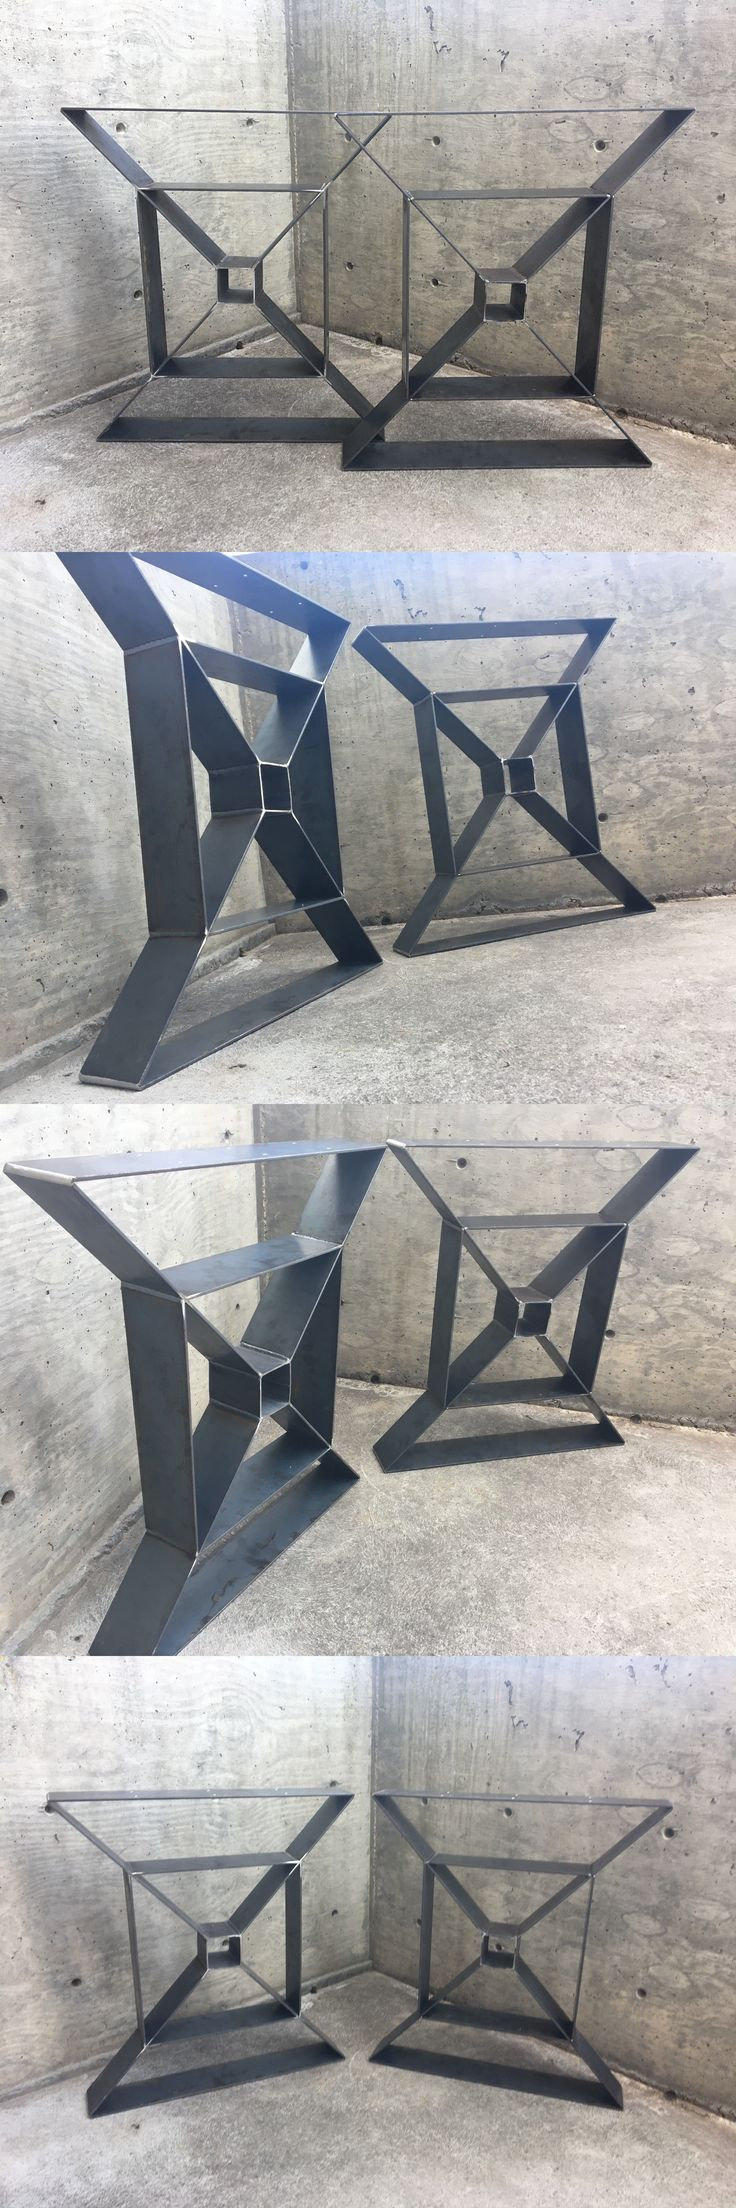 Wood dining with wrought iron quot clasp quot base very popular dining - Furniture Parts And Accessories 179690 Modern Steel Table Legs Heavy Duty Mid Century